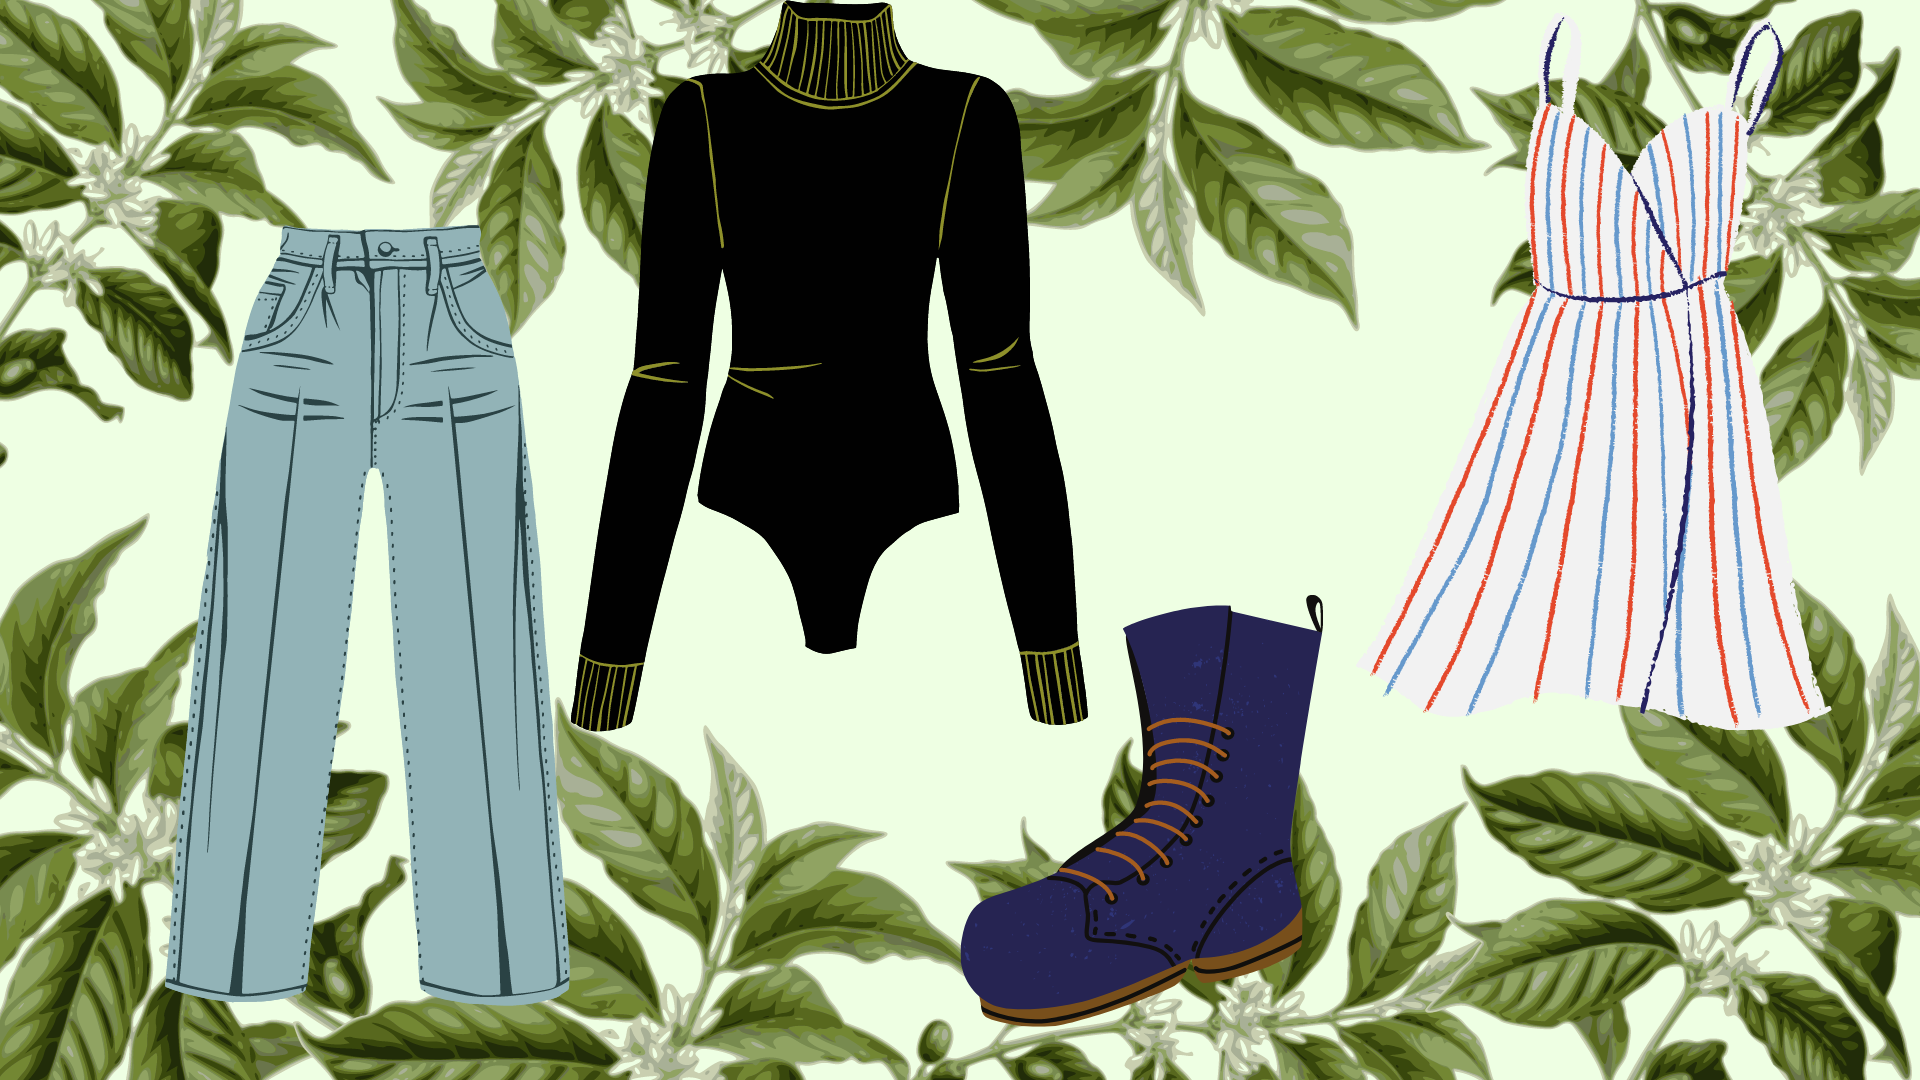 Green background with drawings of pants, turtle neck, boots, and dress